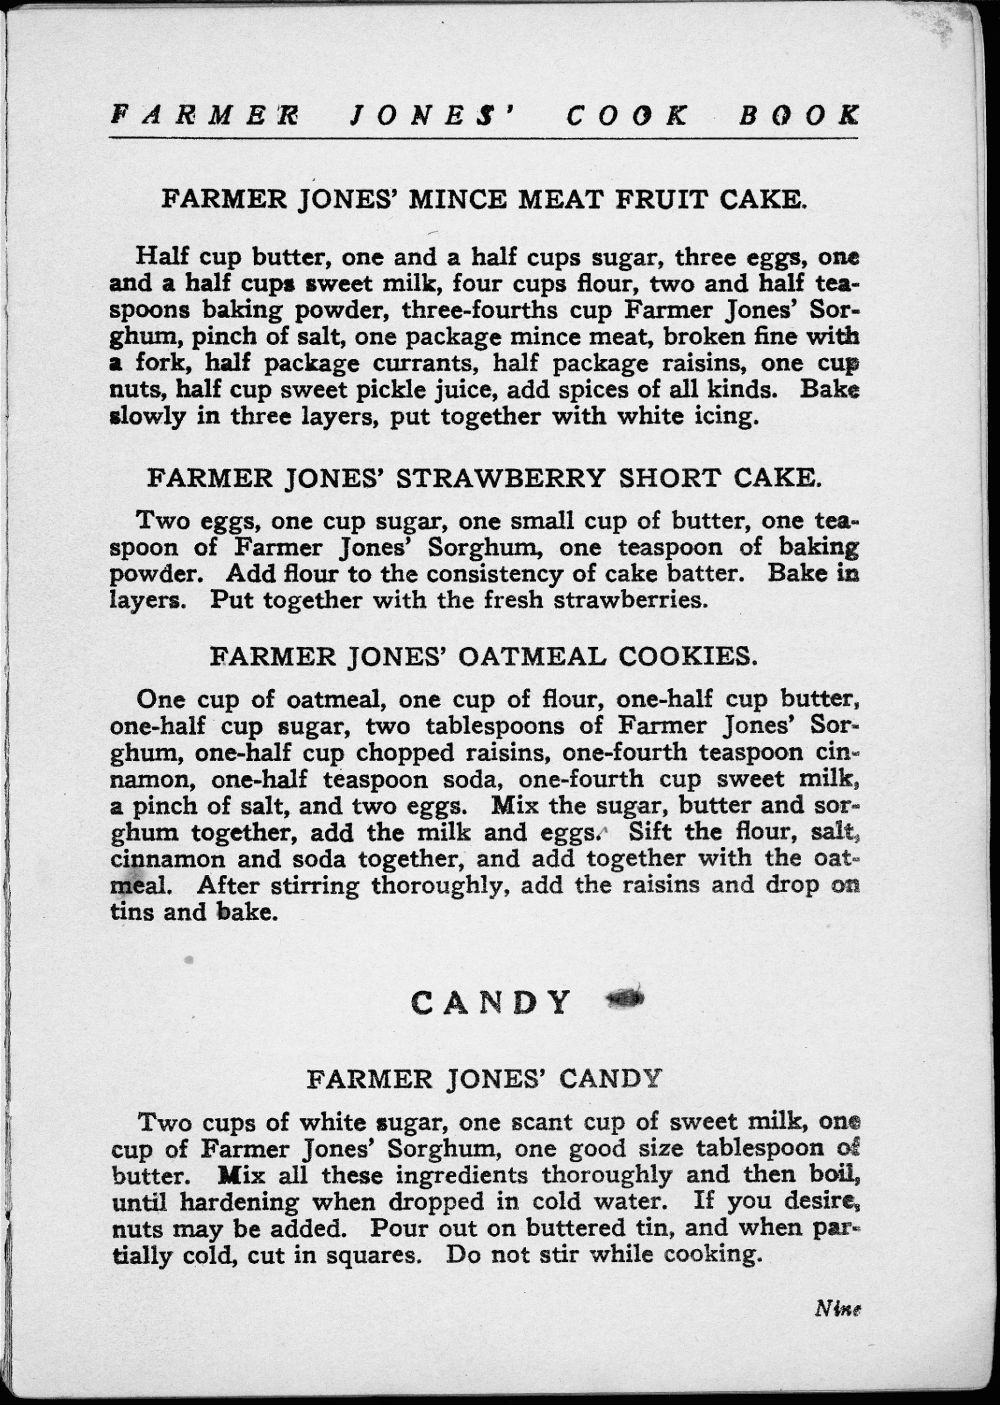 Farmer Jones Cook Book - 10